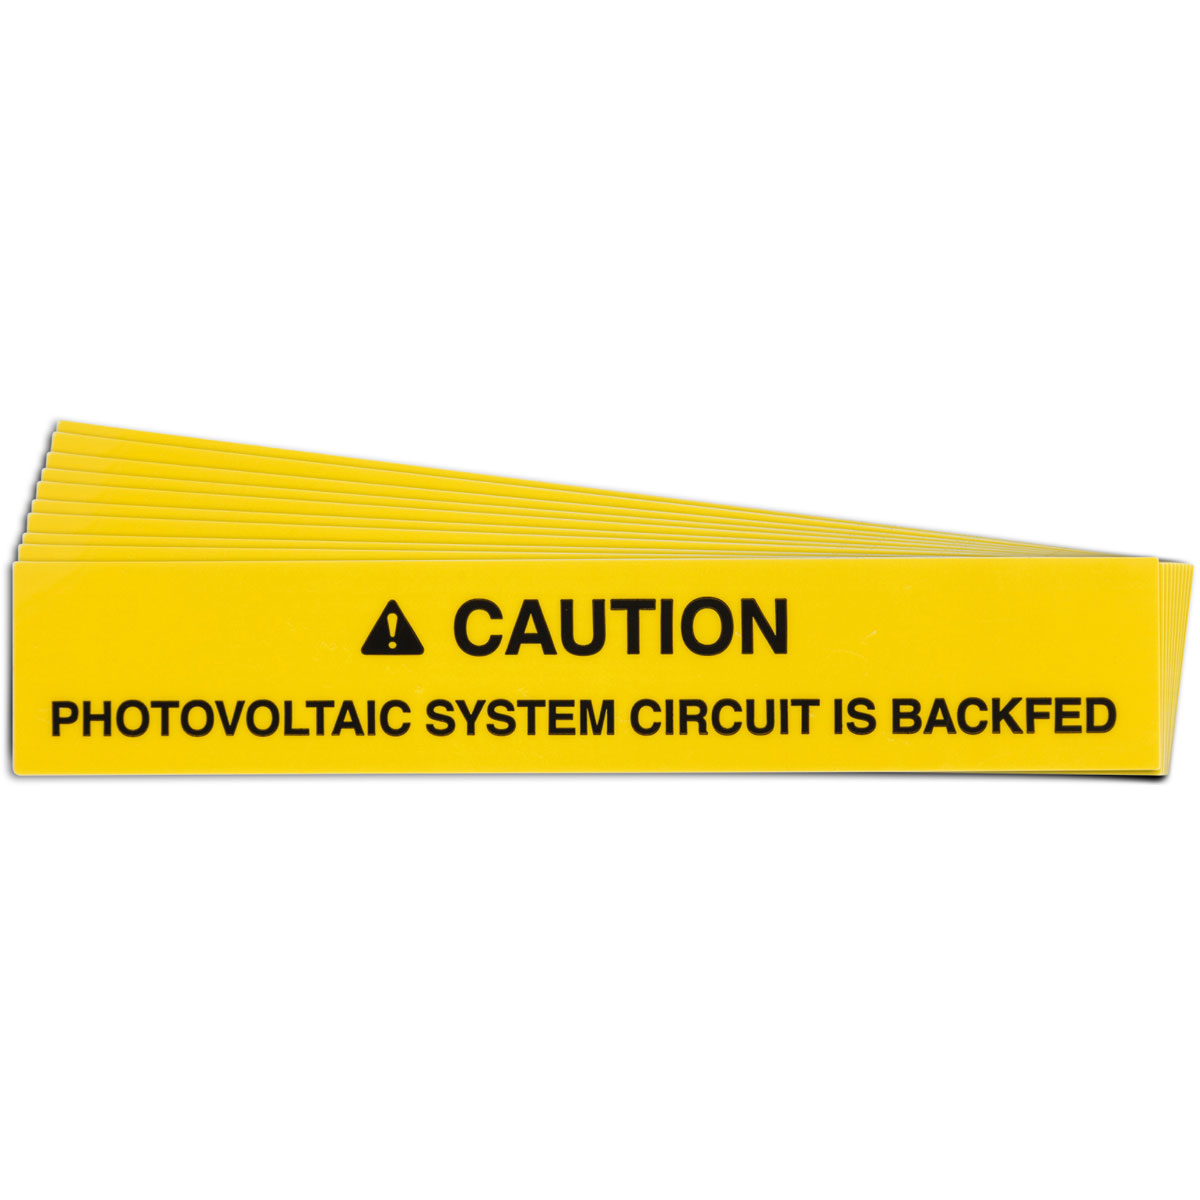 Pre-Printed SOLAR CIRCUIT BACKFED Warning Labels